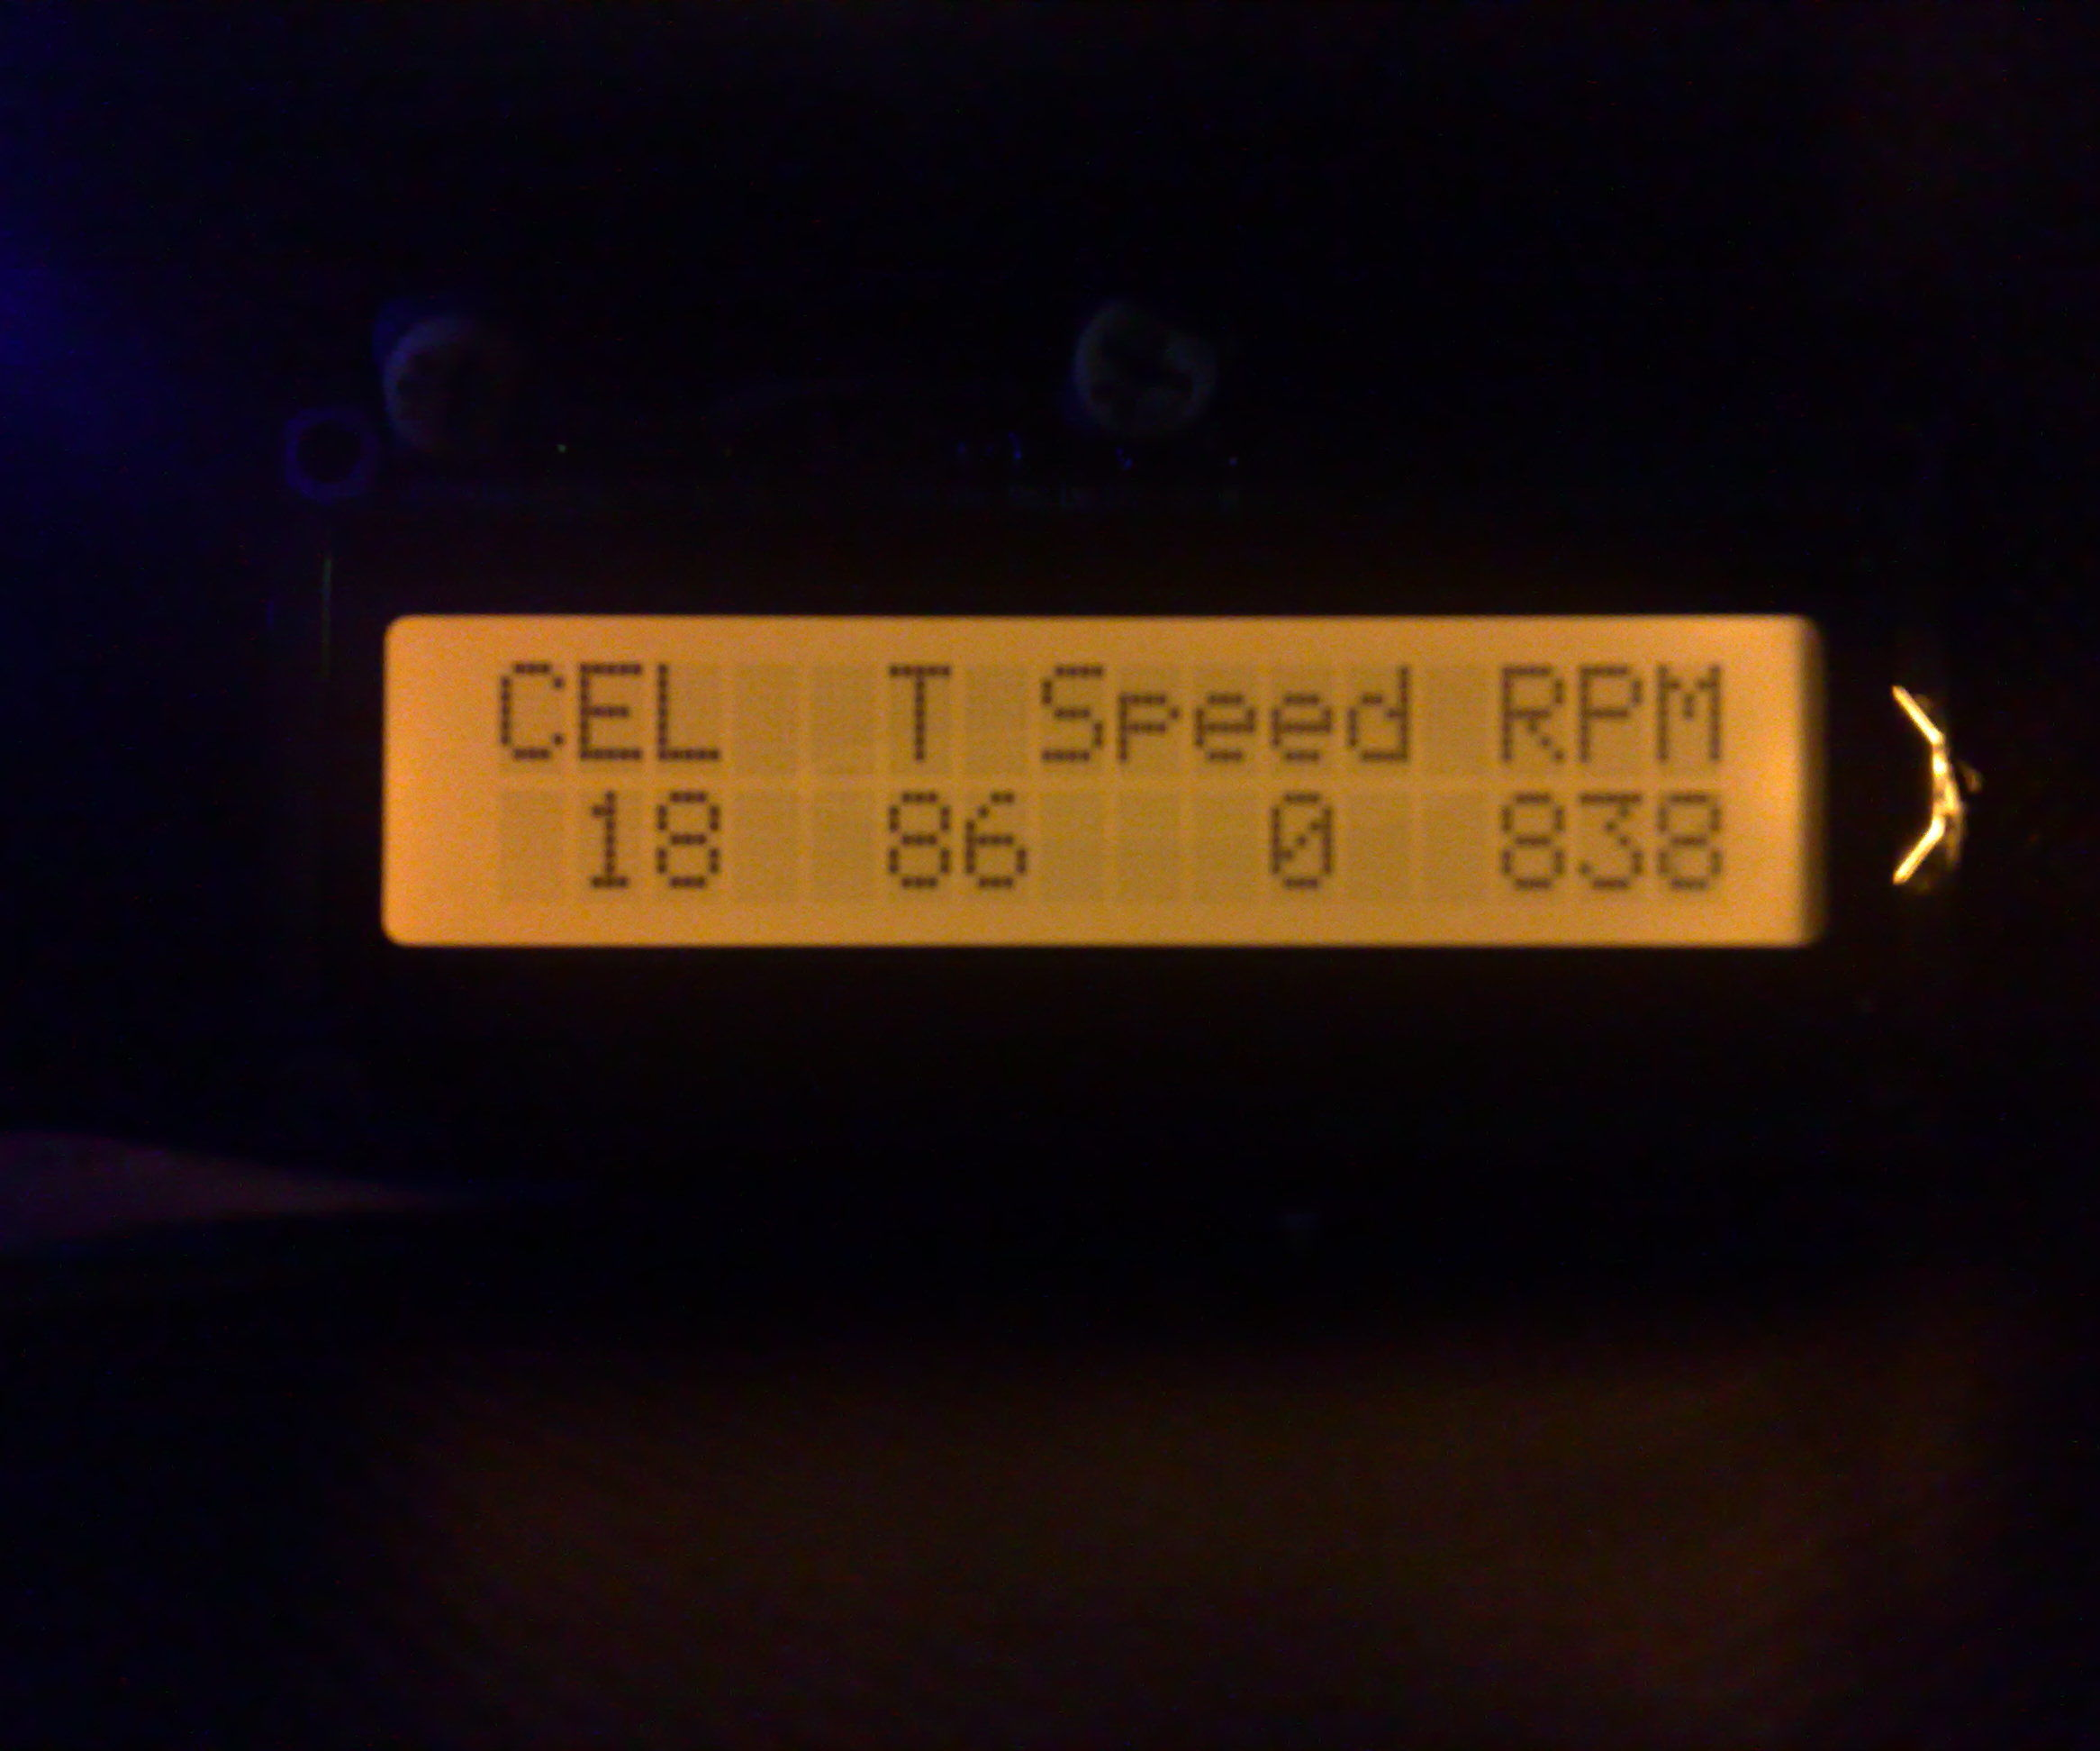 Cheap OBD2 Communications on K-line (ISO 9141-2 and ISO